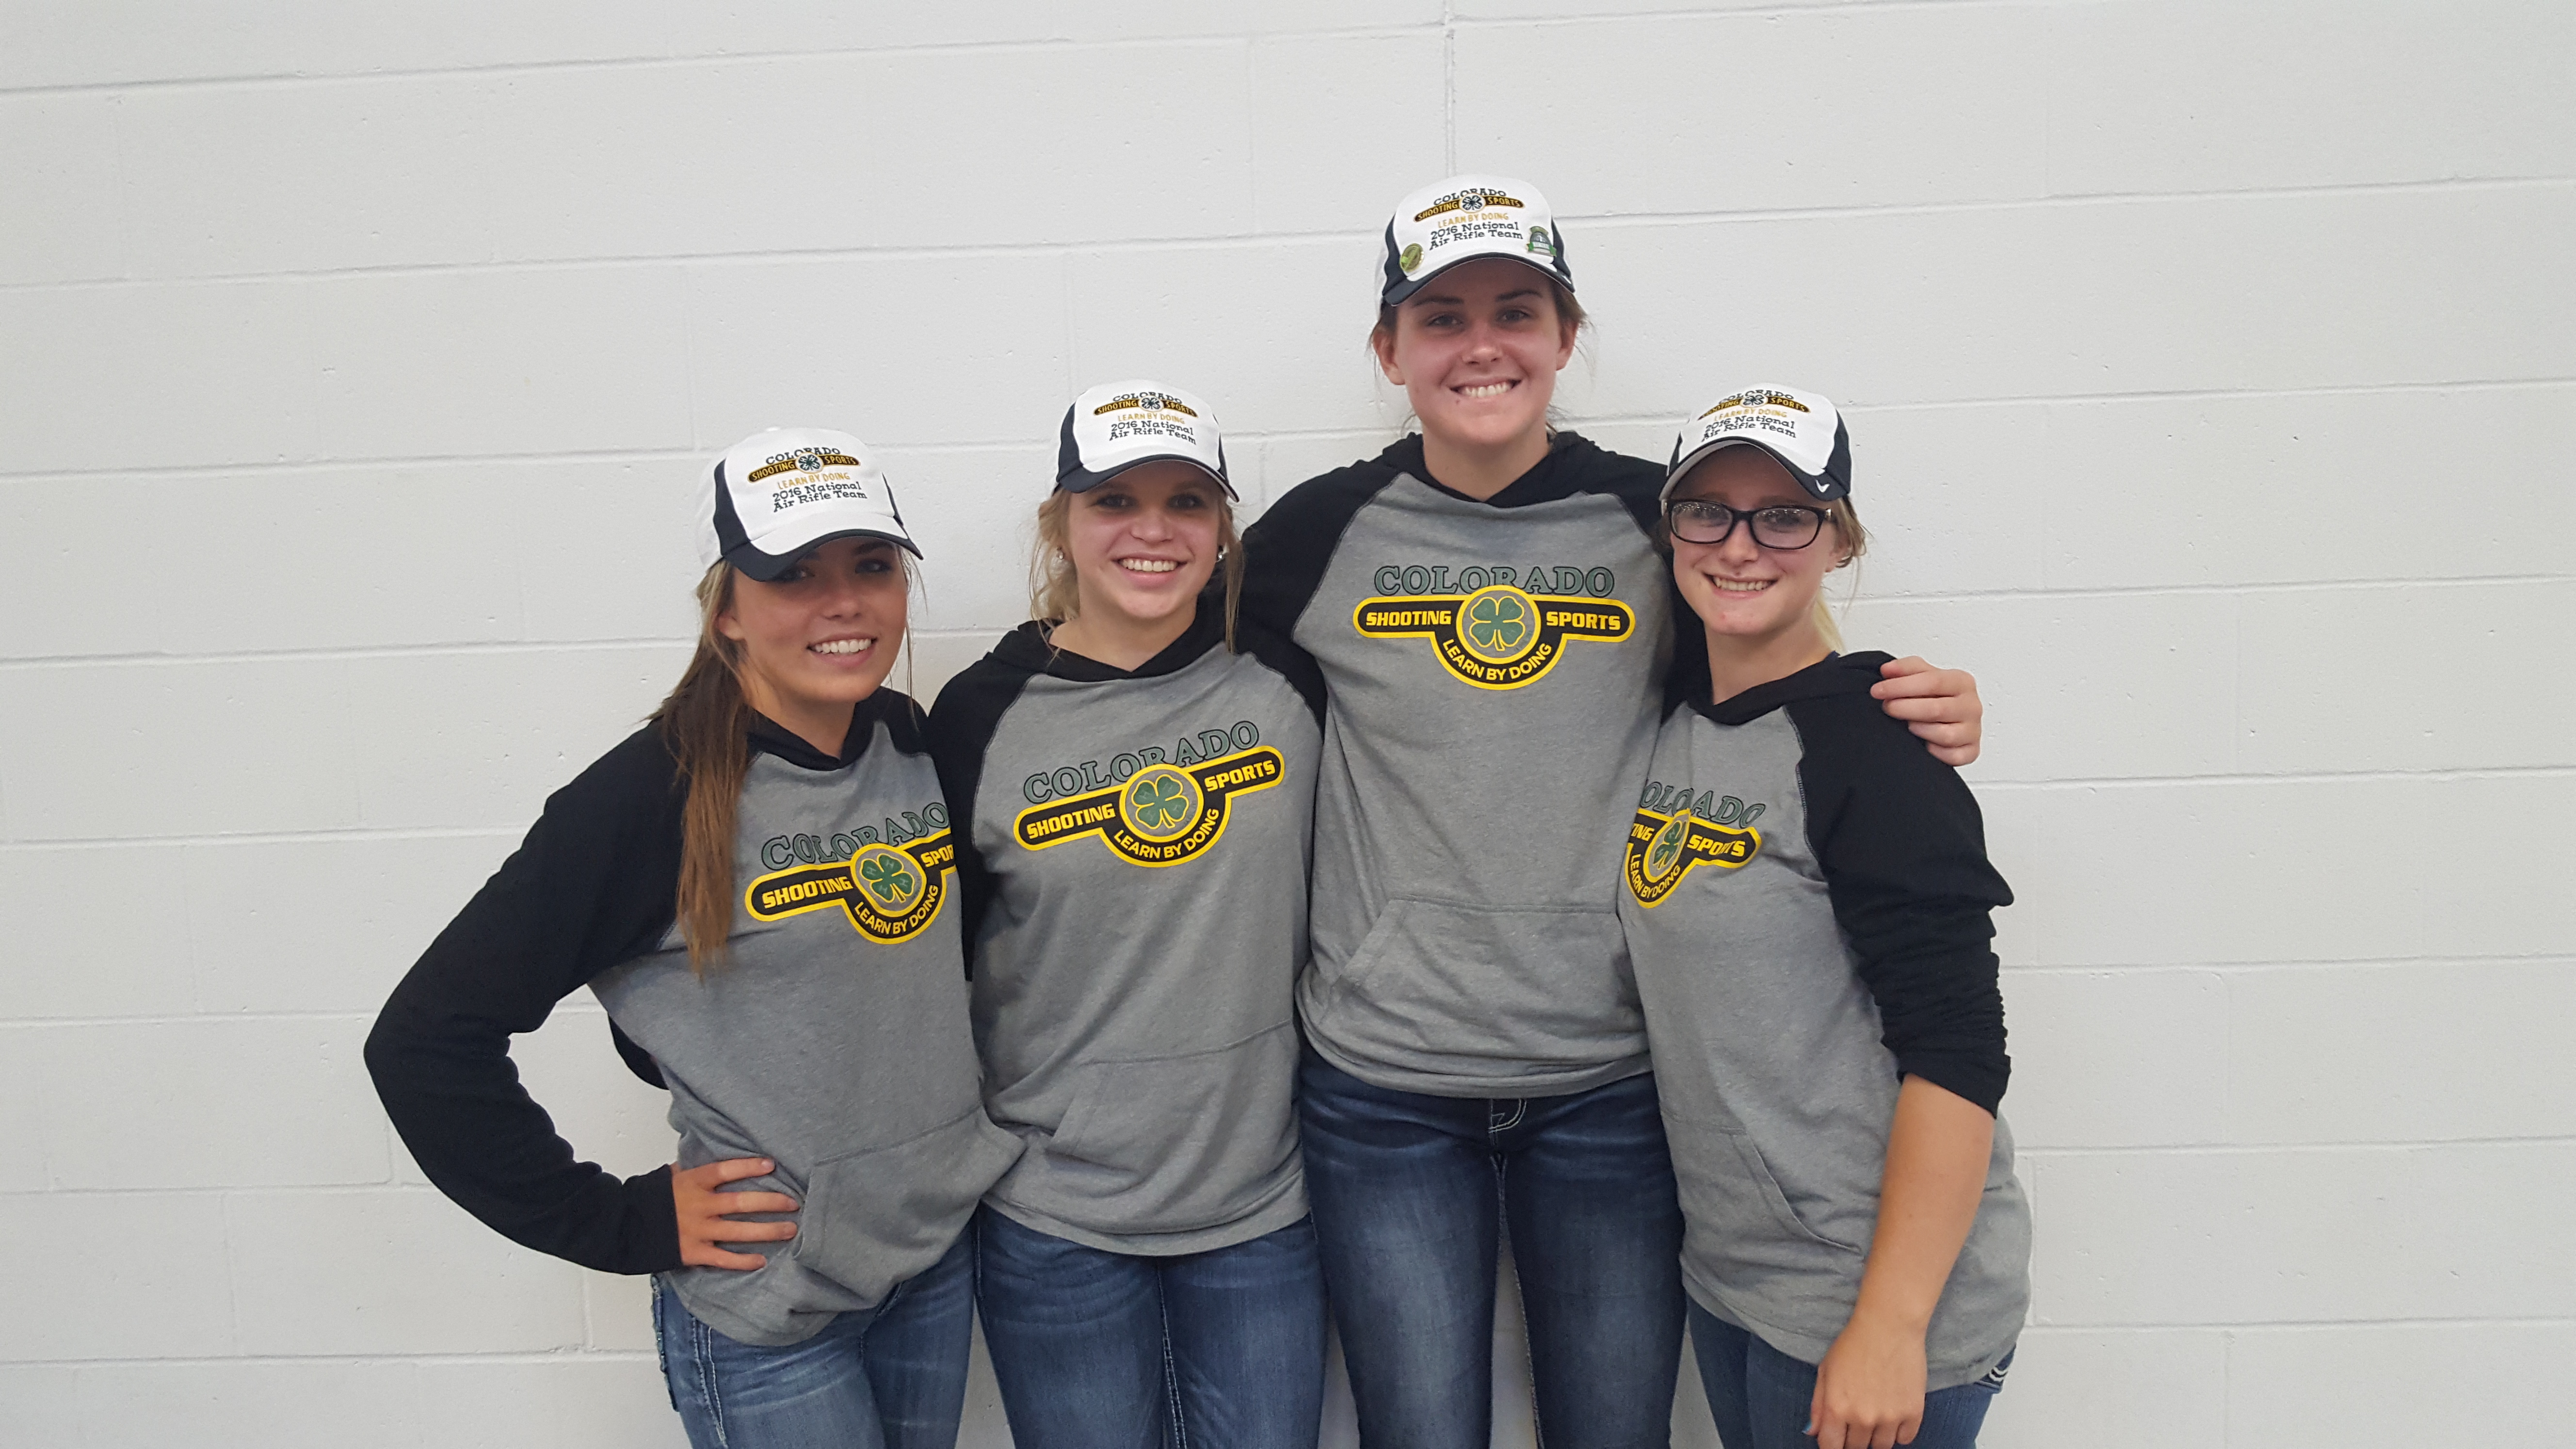 Design your own t-shirt and hats - Colorado Air Rifle Team At Nationals T Shirt Photo